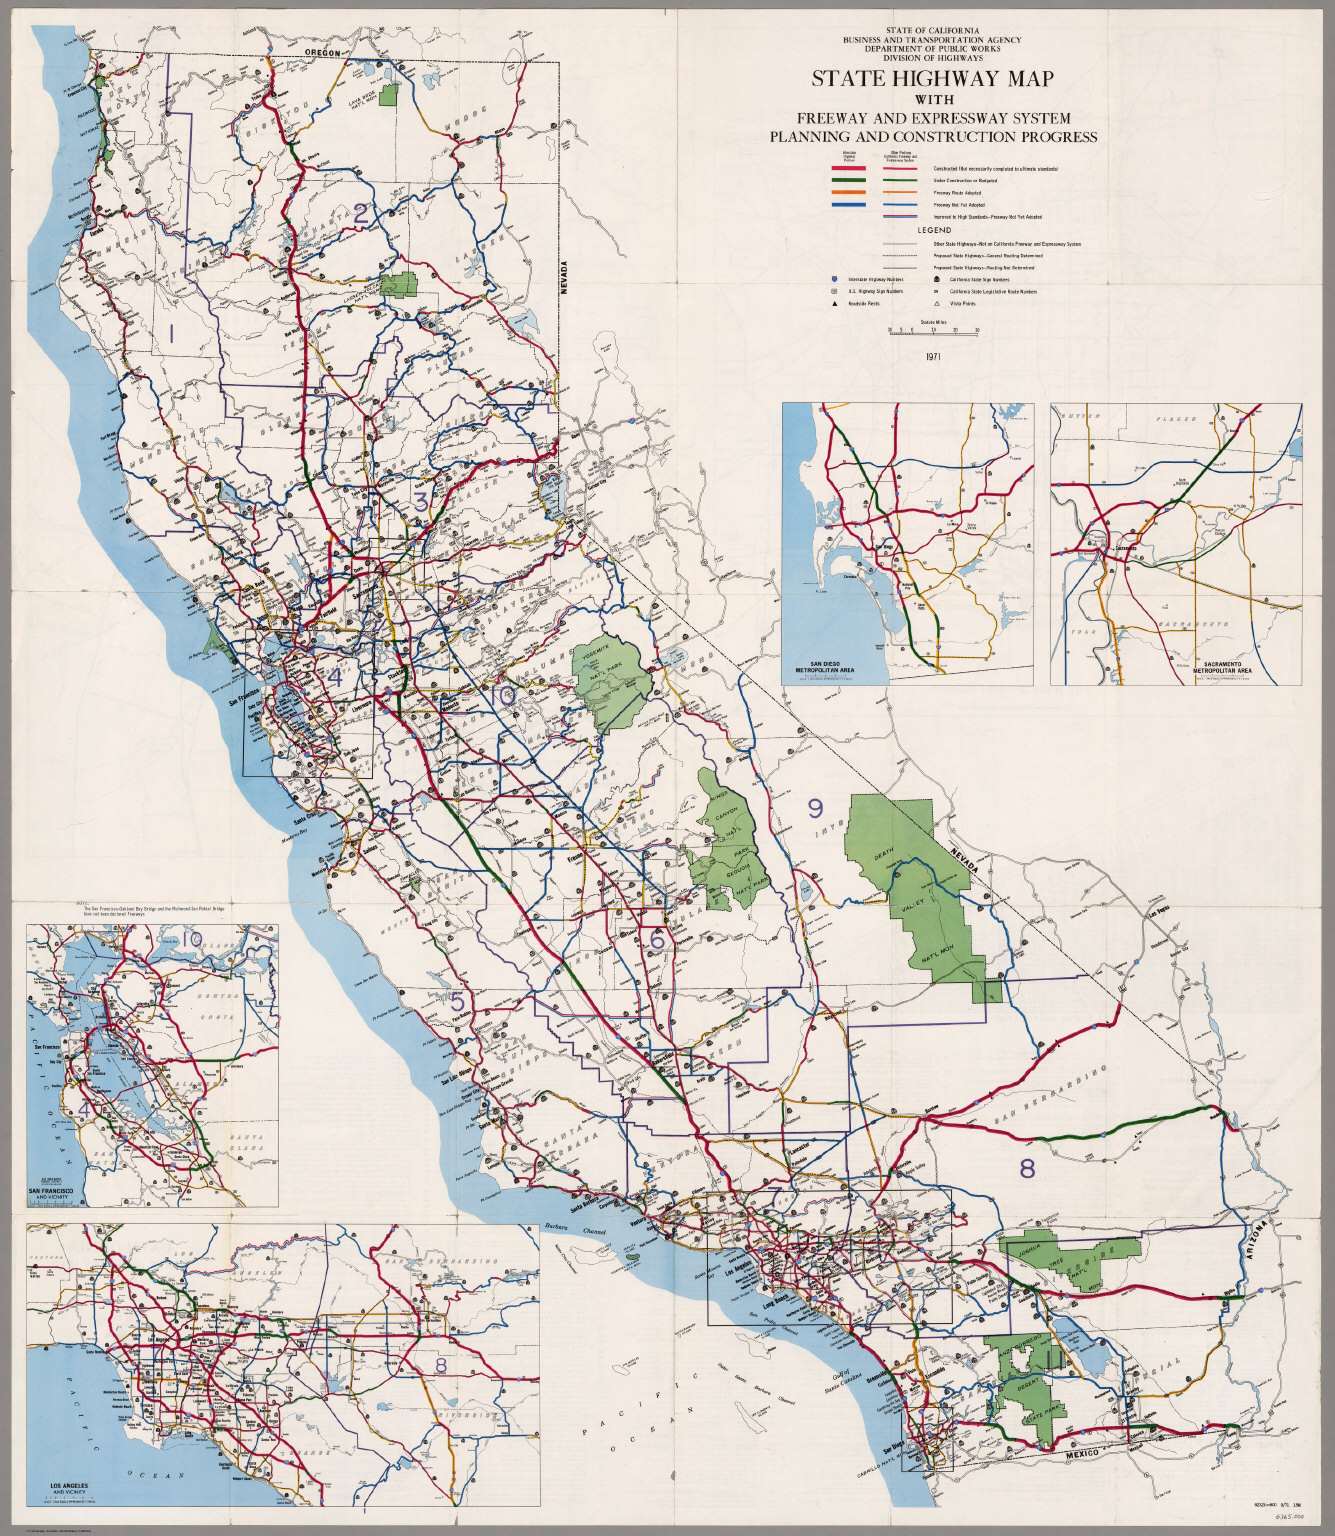 California Freeway and Expressway System, January 1971.